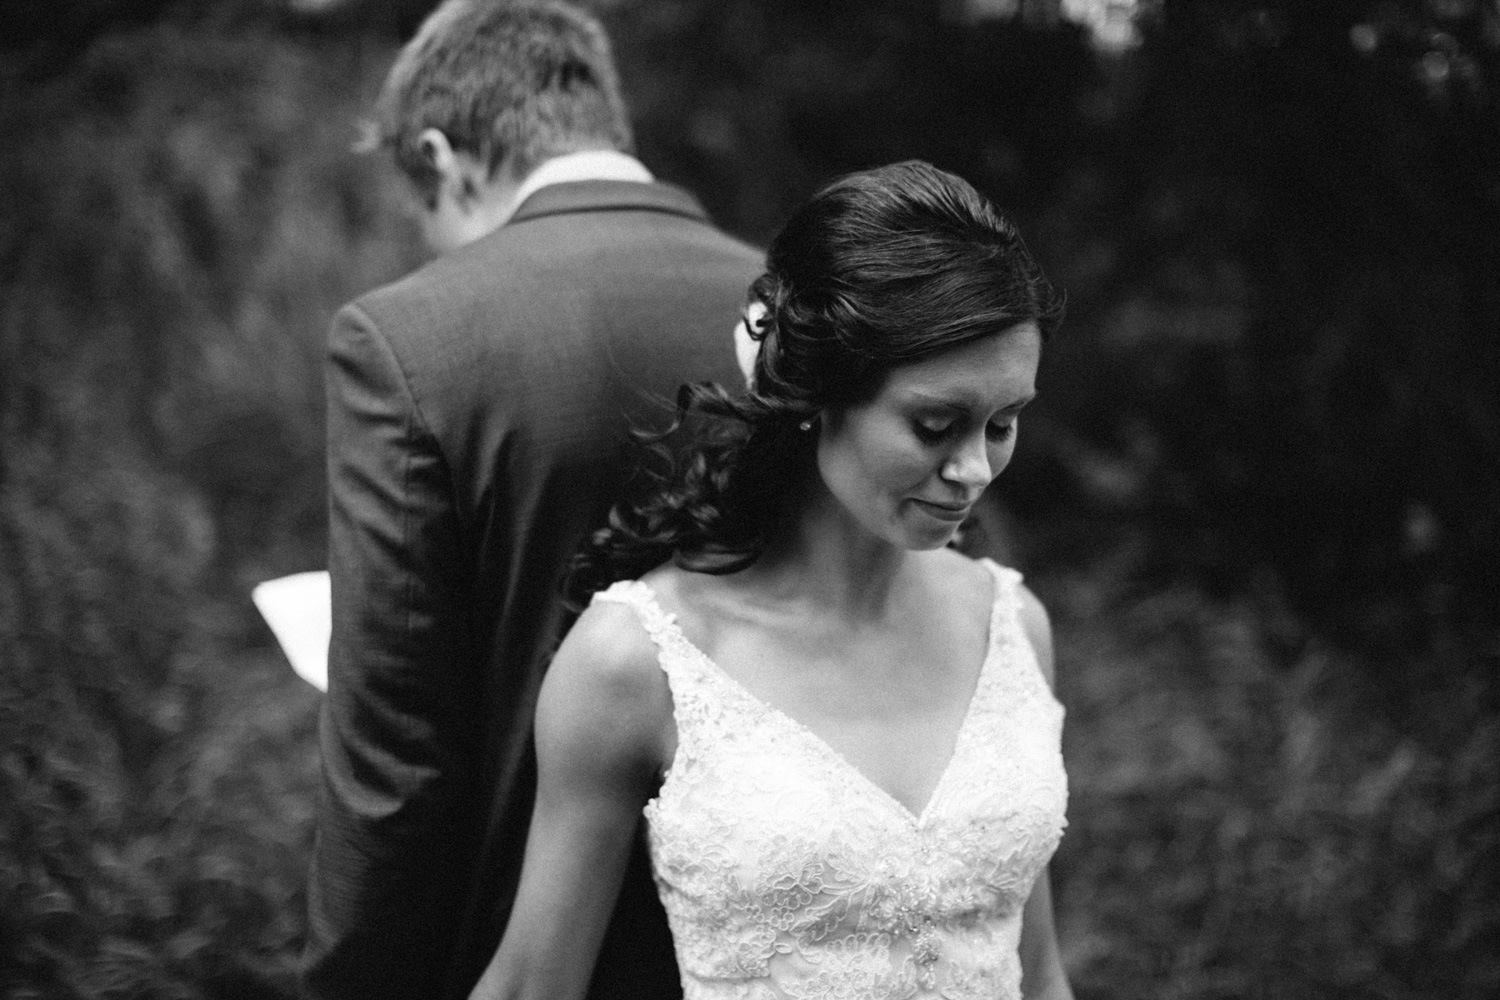 Outdoor_Wedding_SiouxFalls_MaryJoWegnerArboretum_Photographer_Calli&Jon_035.jpg